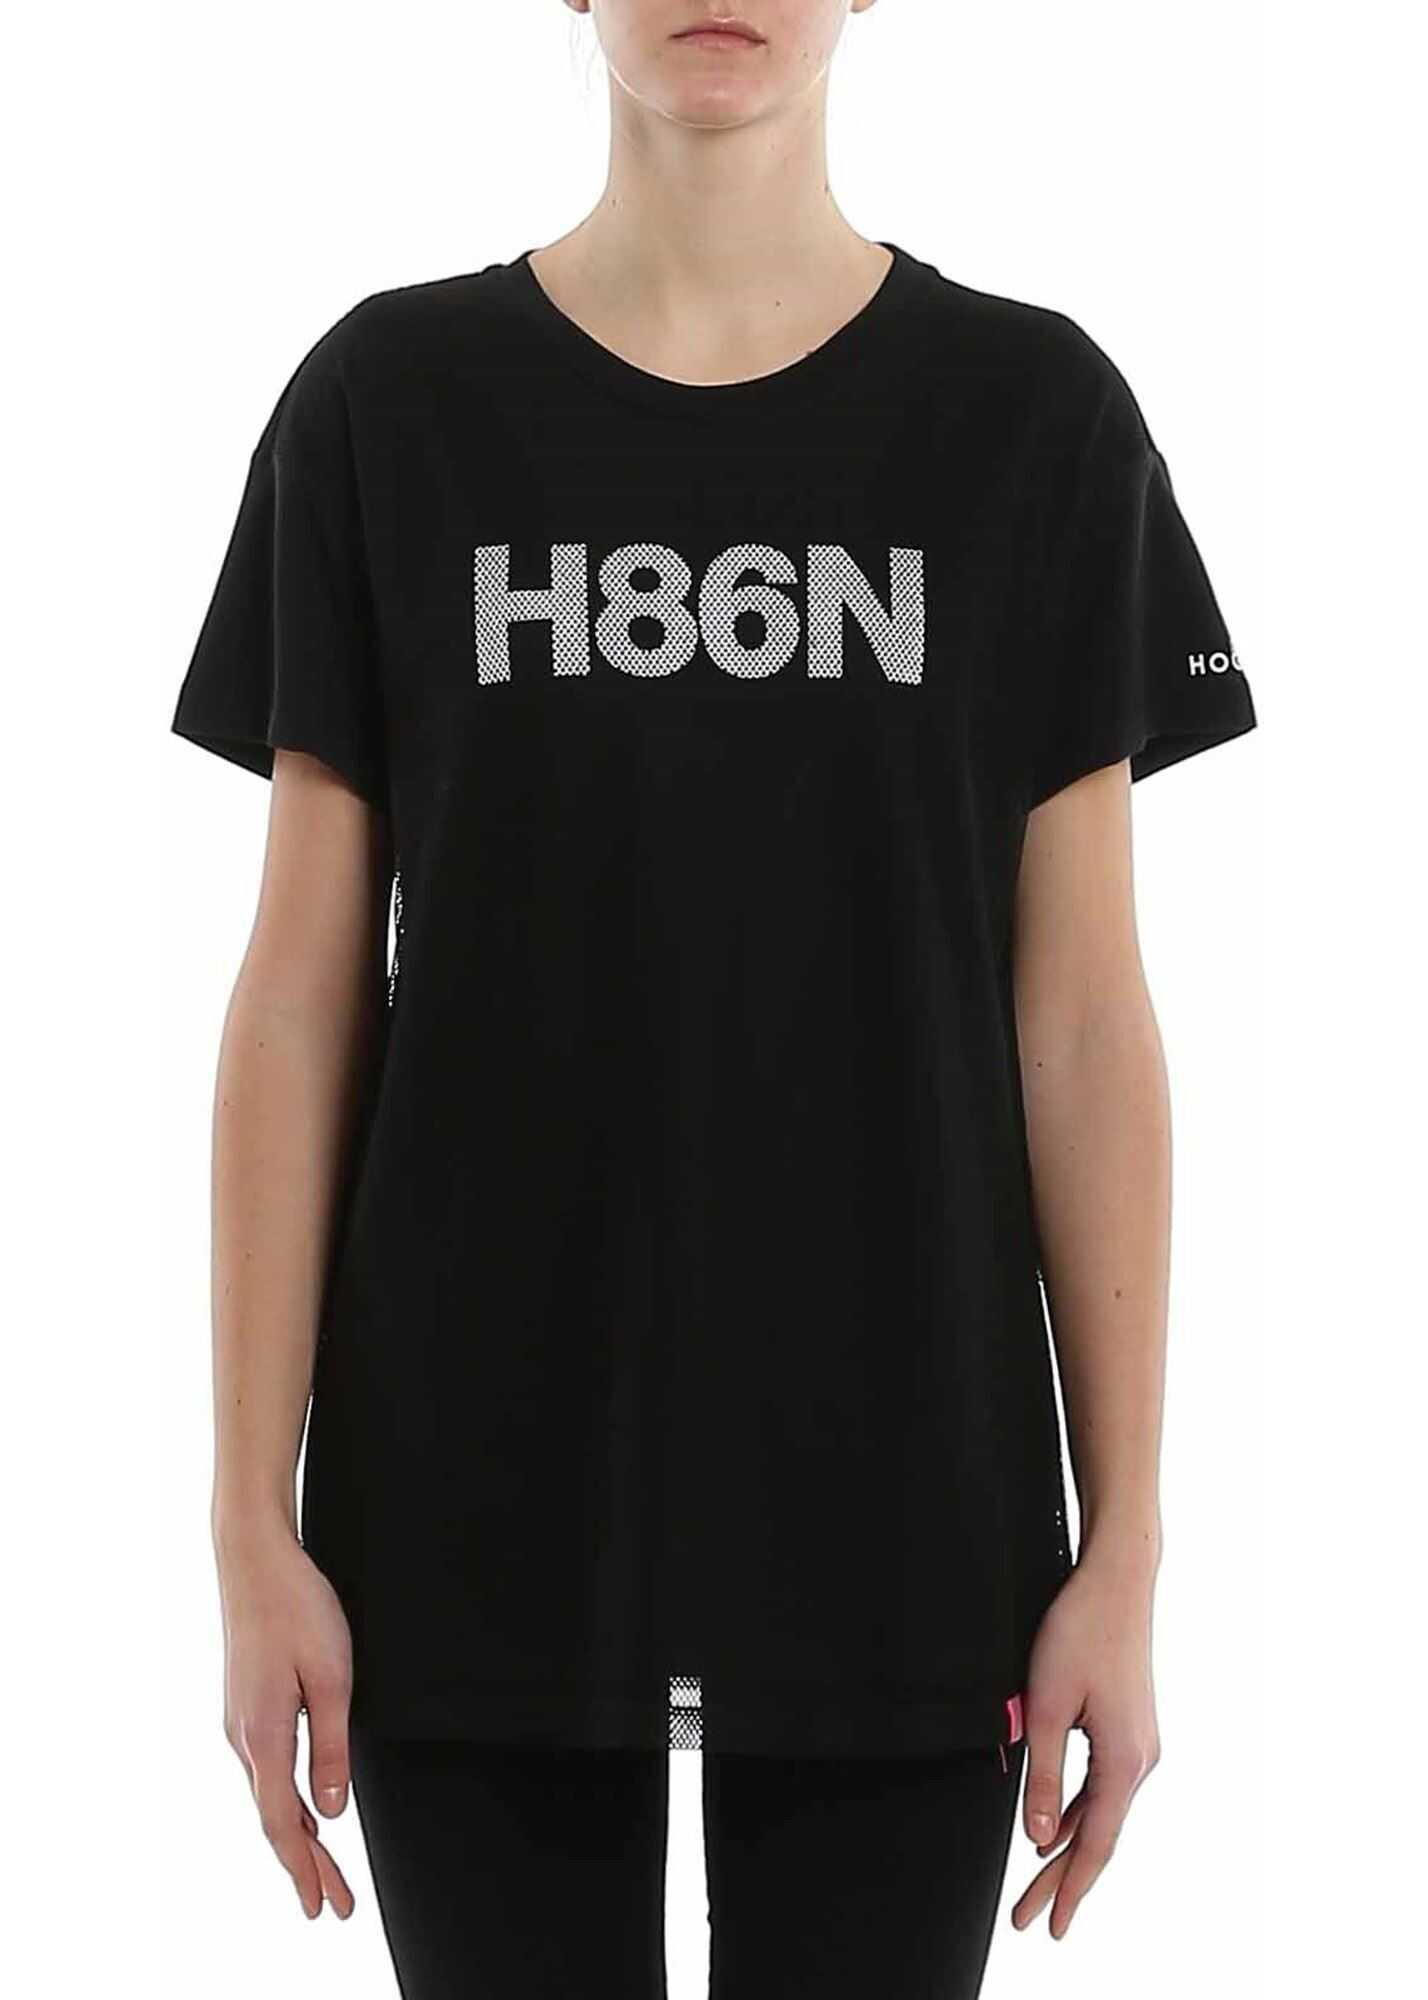 Hogan H86N T-Shirt In Black Black